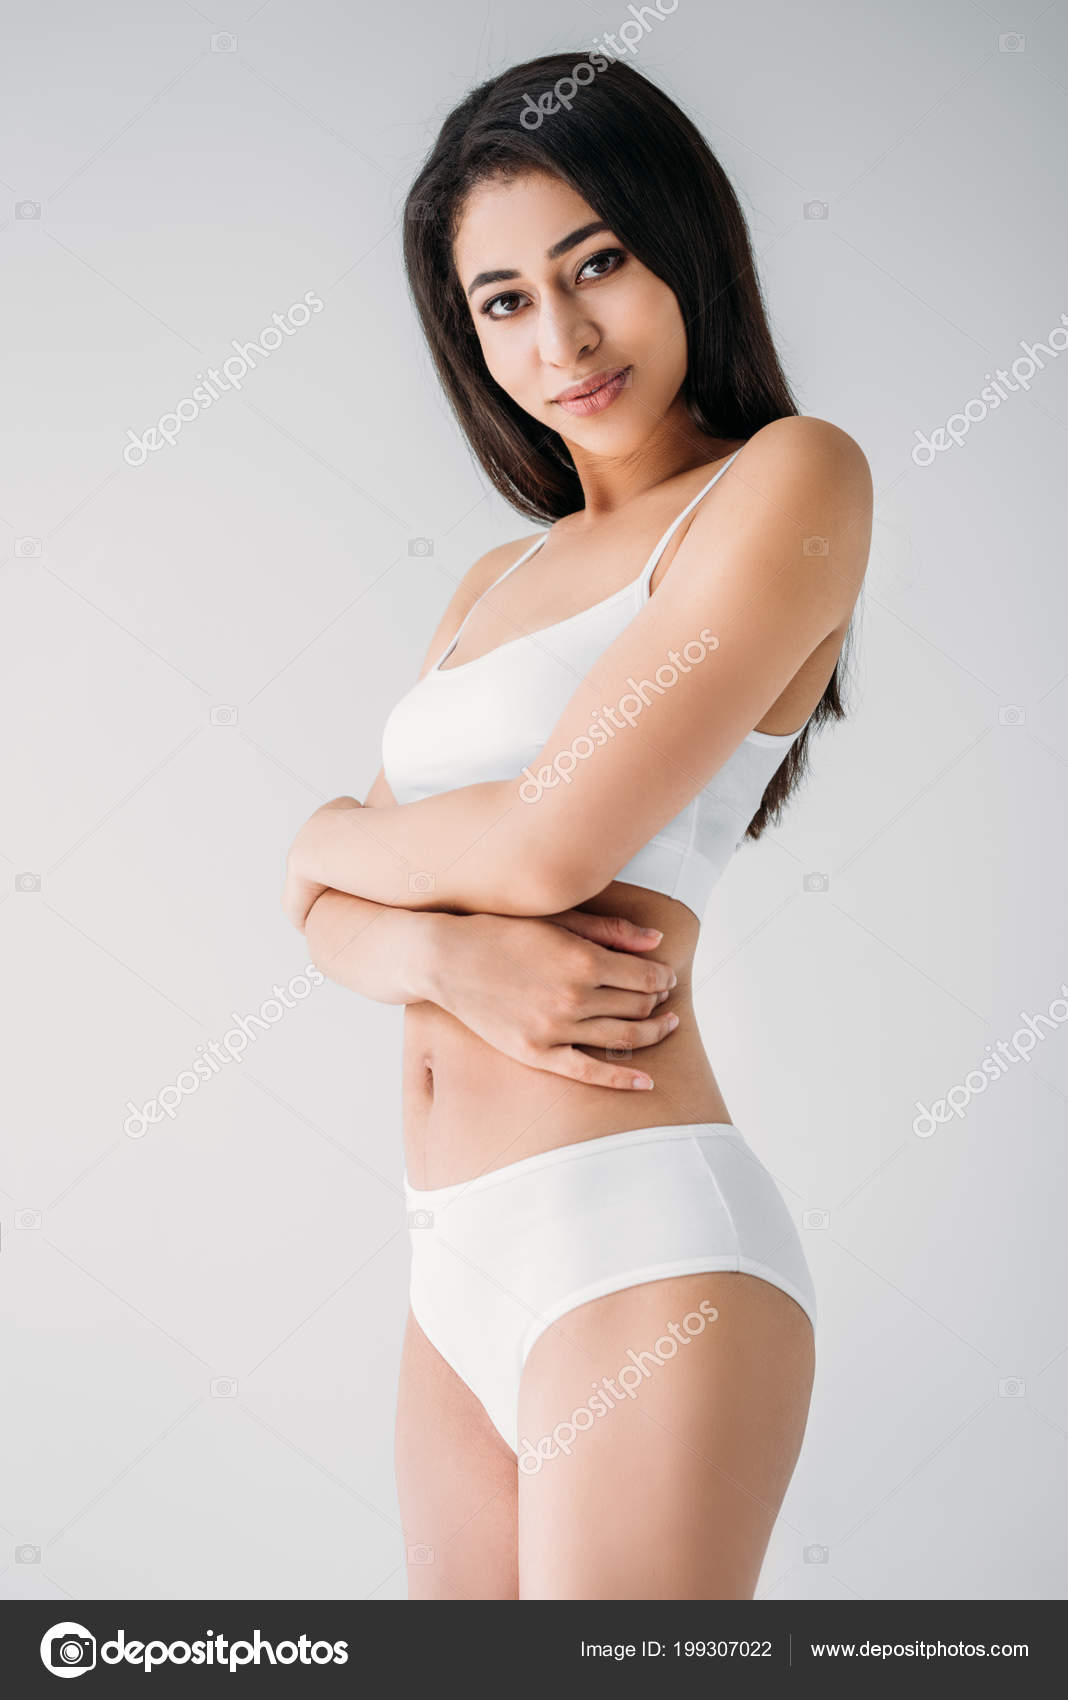 c67194f505 Attractive mixed race woman in white lingerie with crossed hands isolated  on gray background– stock image